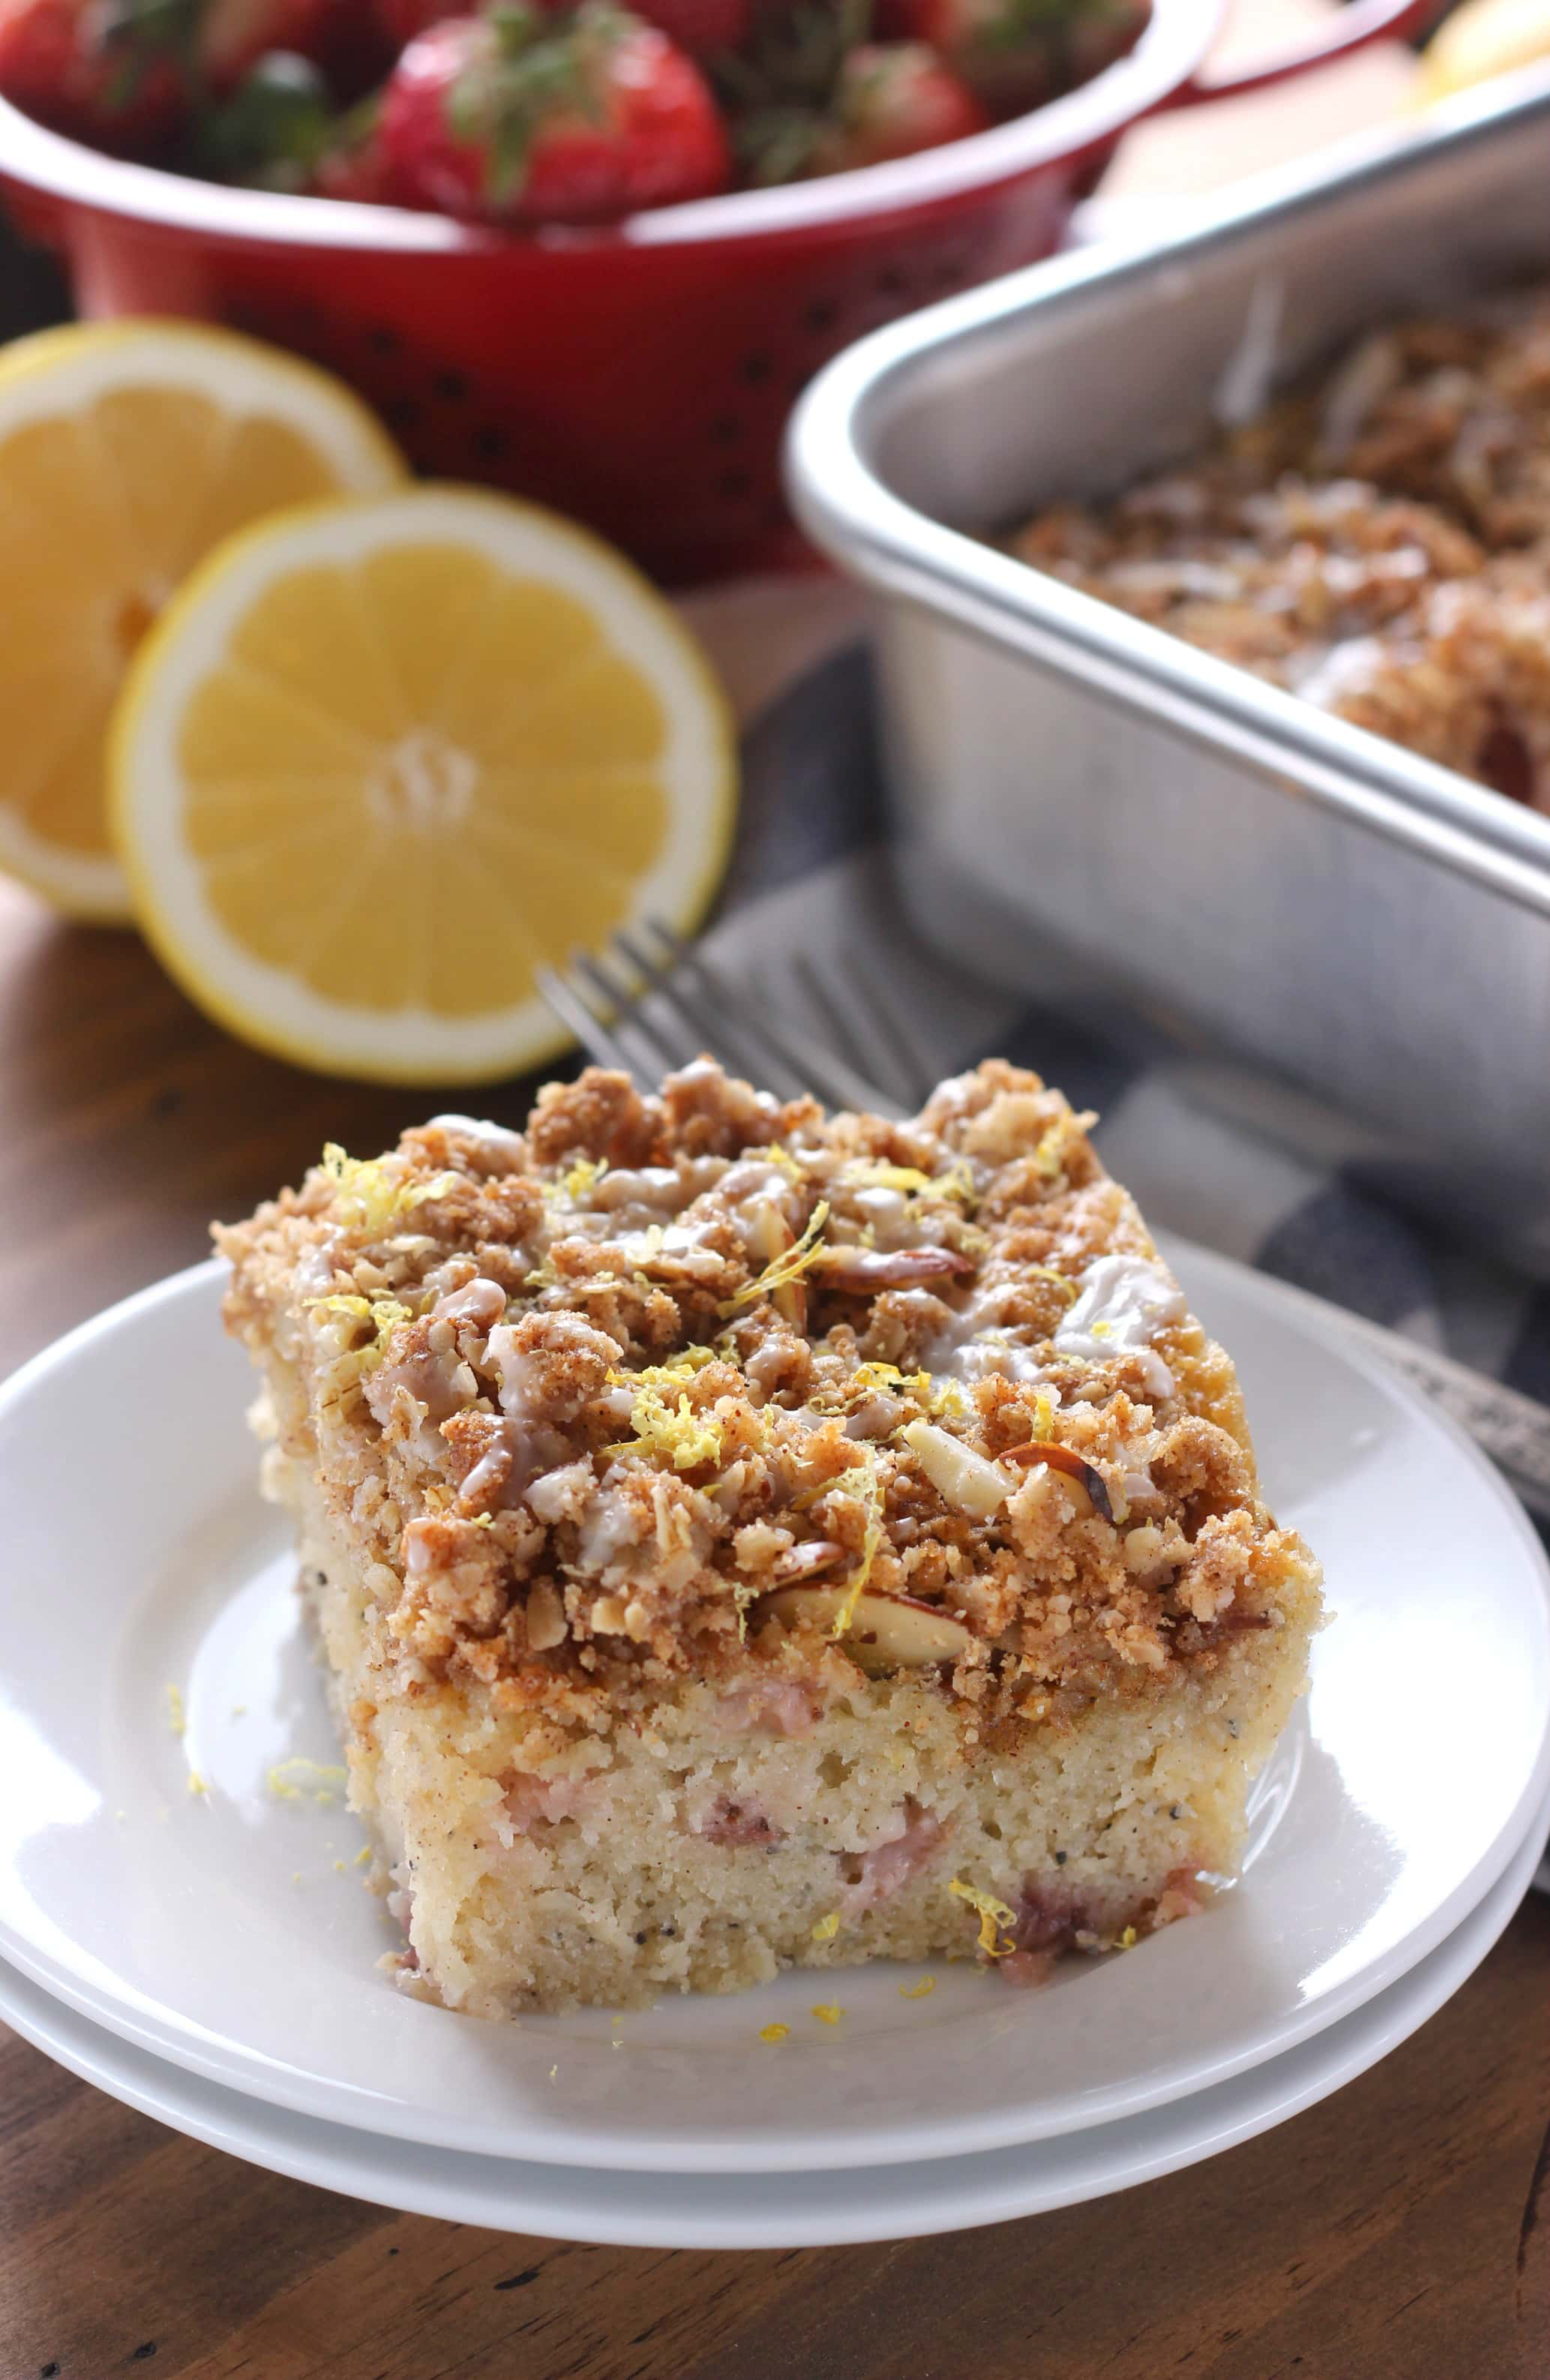 Gluten Free Strawberry Lemon Poppy Seed Coffee Cake Recipe from A Kitchen Addiction